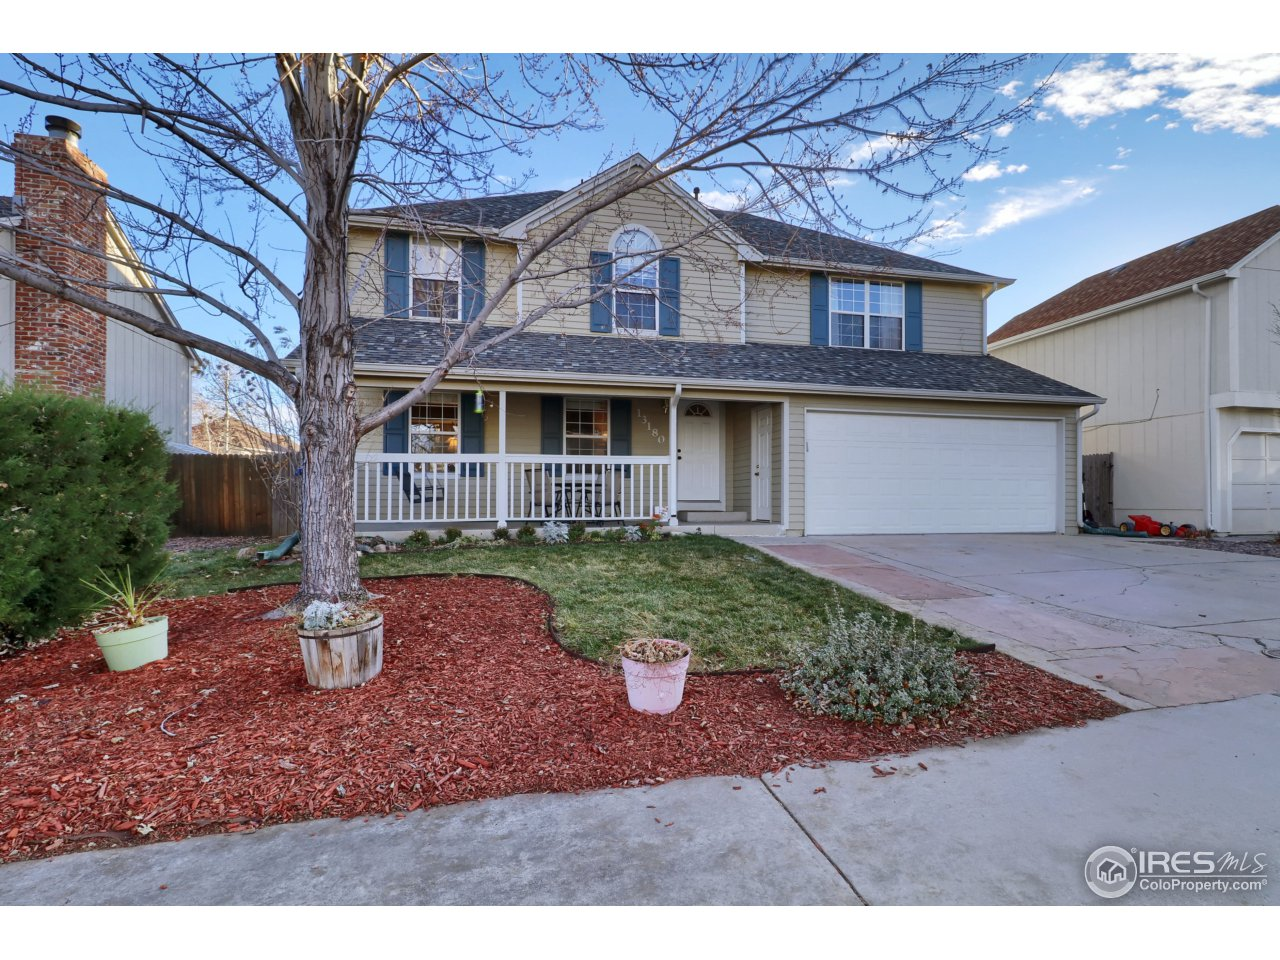 13180 W 63rd Cir, Arvada CO 80004